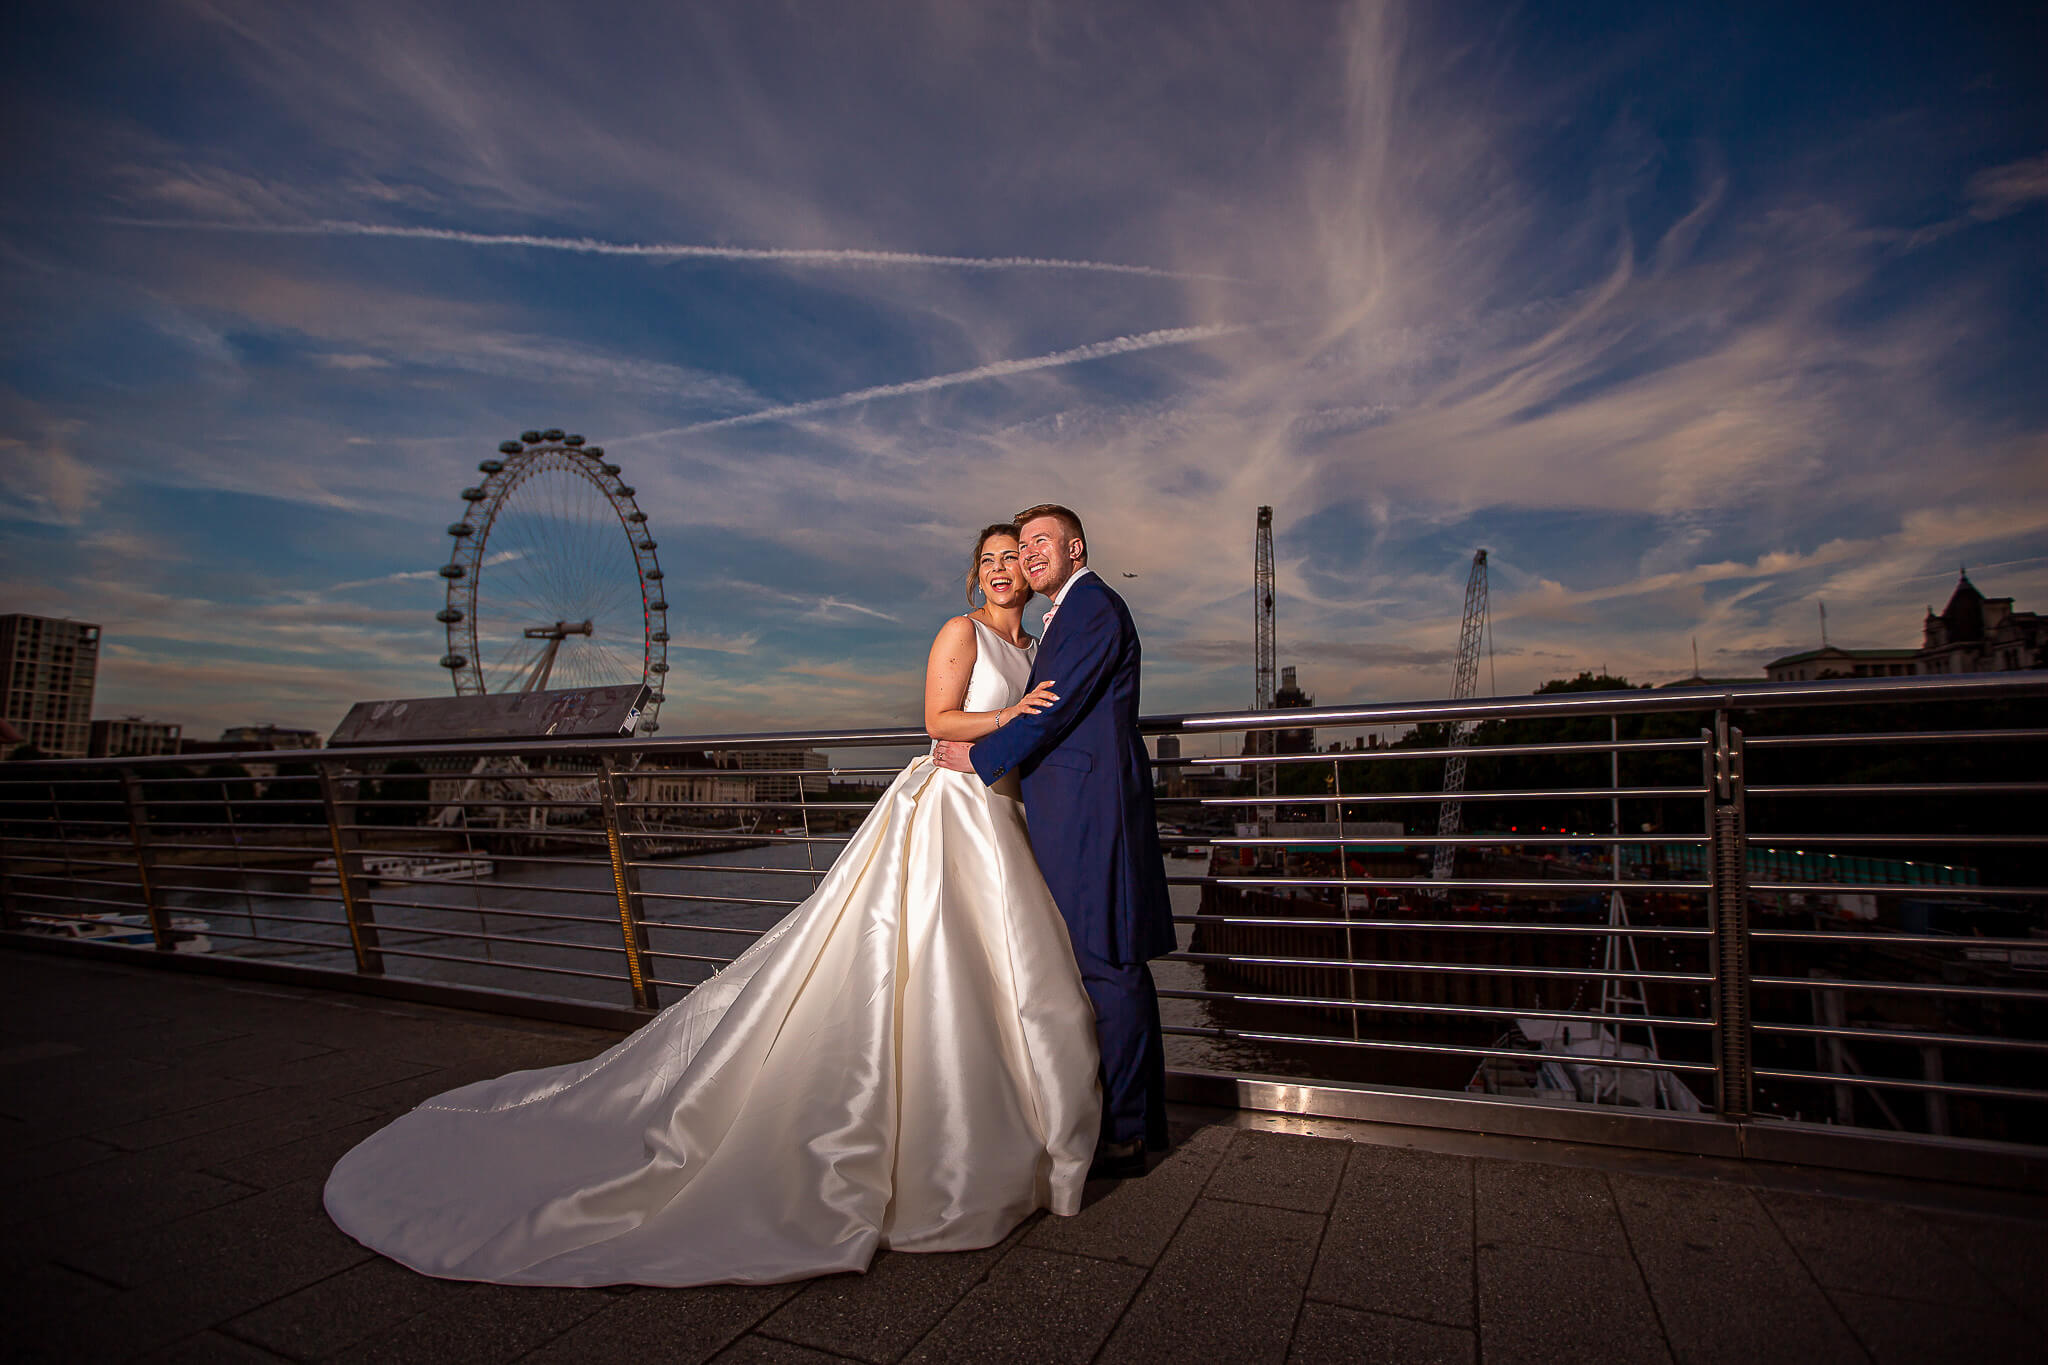 best-wedding-photographers-uk-europe-stanbury-photography-183